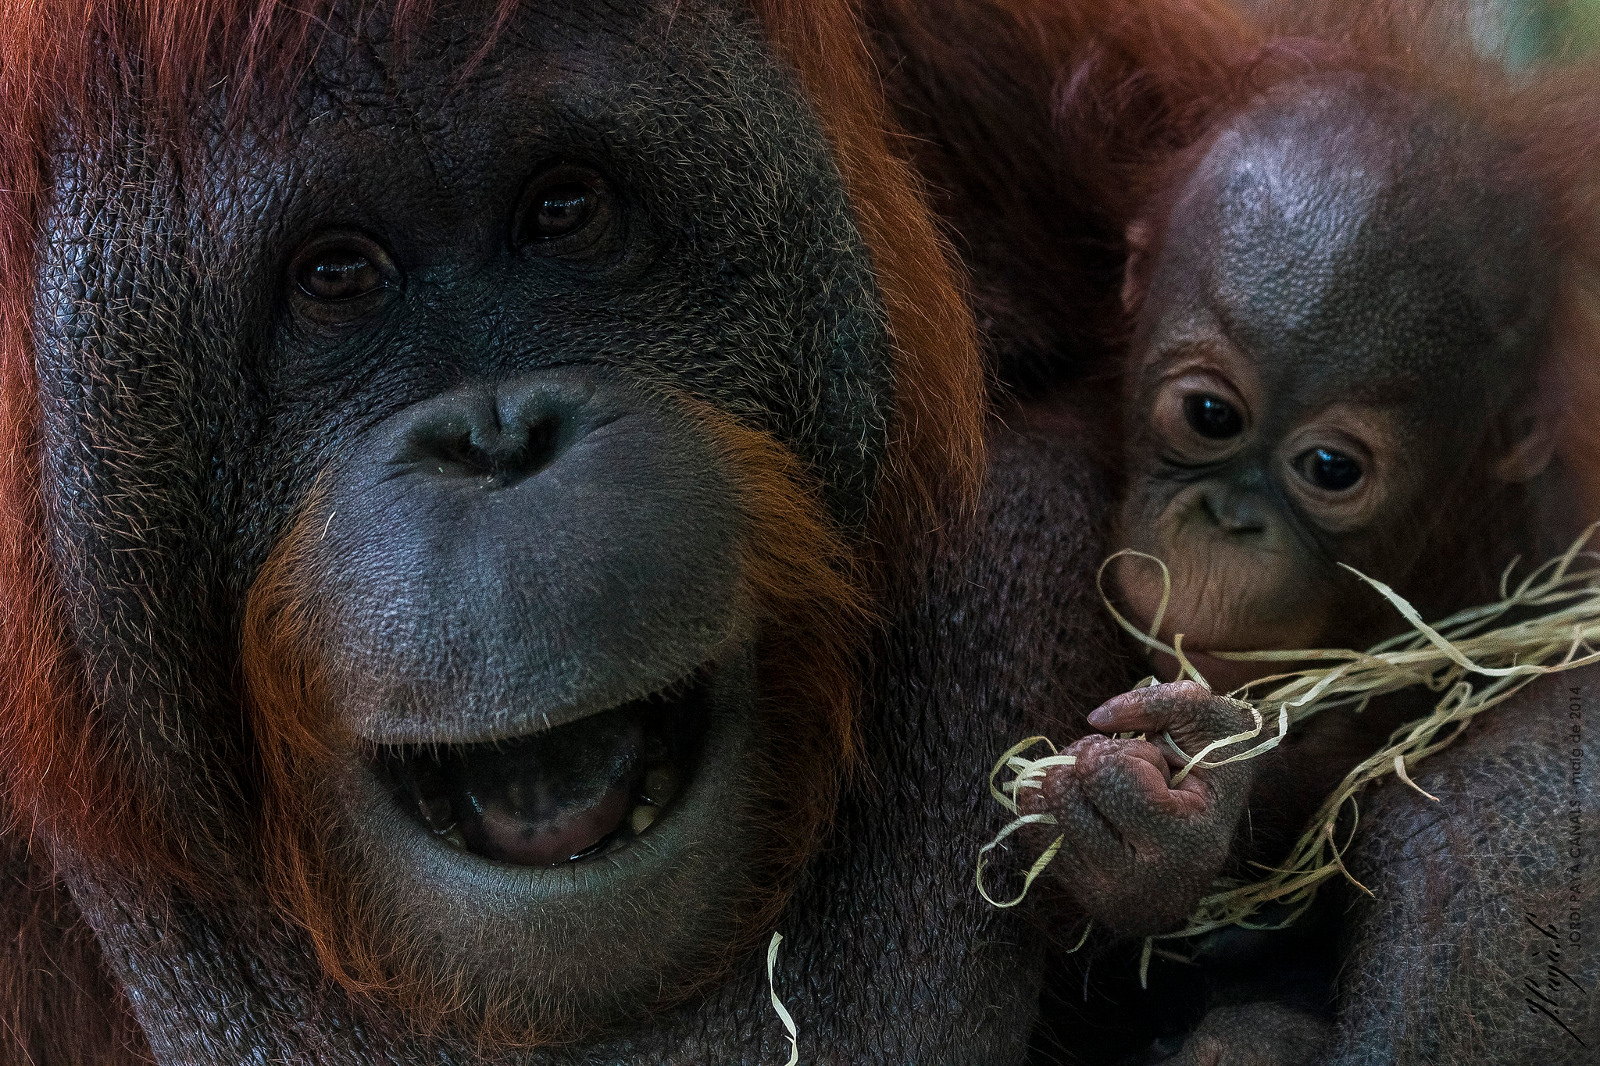 Sumatra's Animals are in Danger of Extinction Due to Palm Oil. Here's What We're Doing to Help